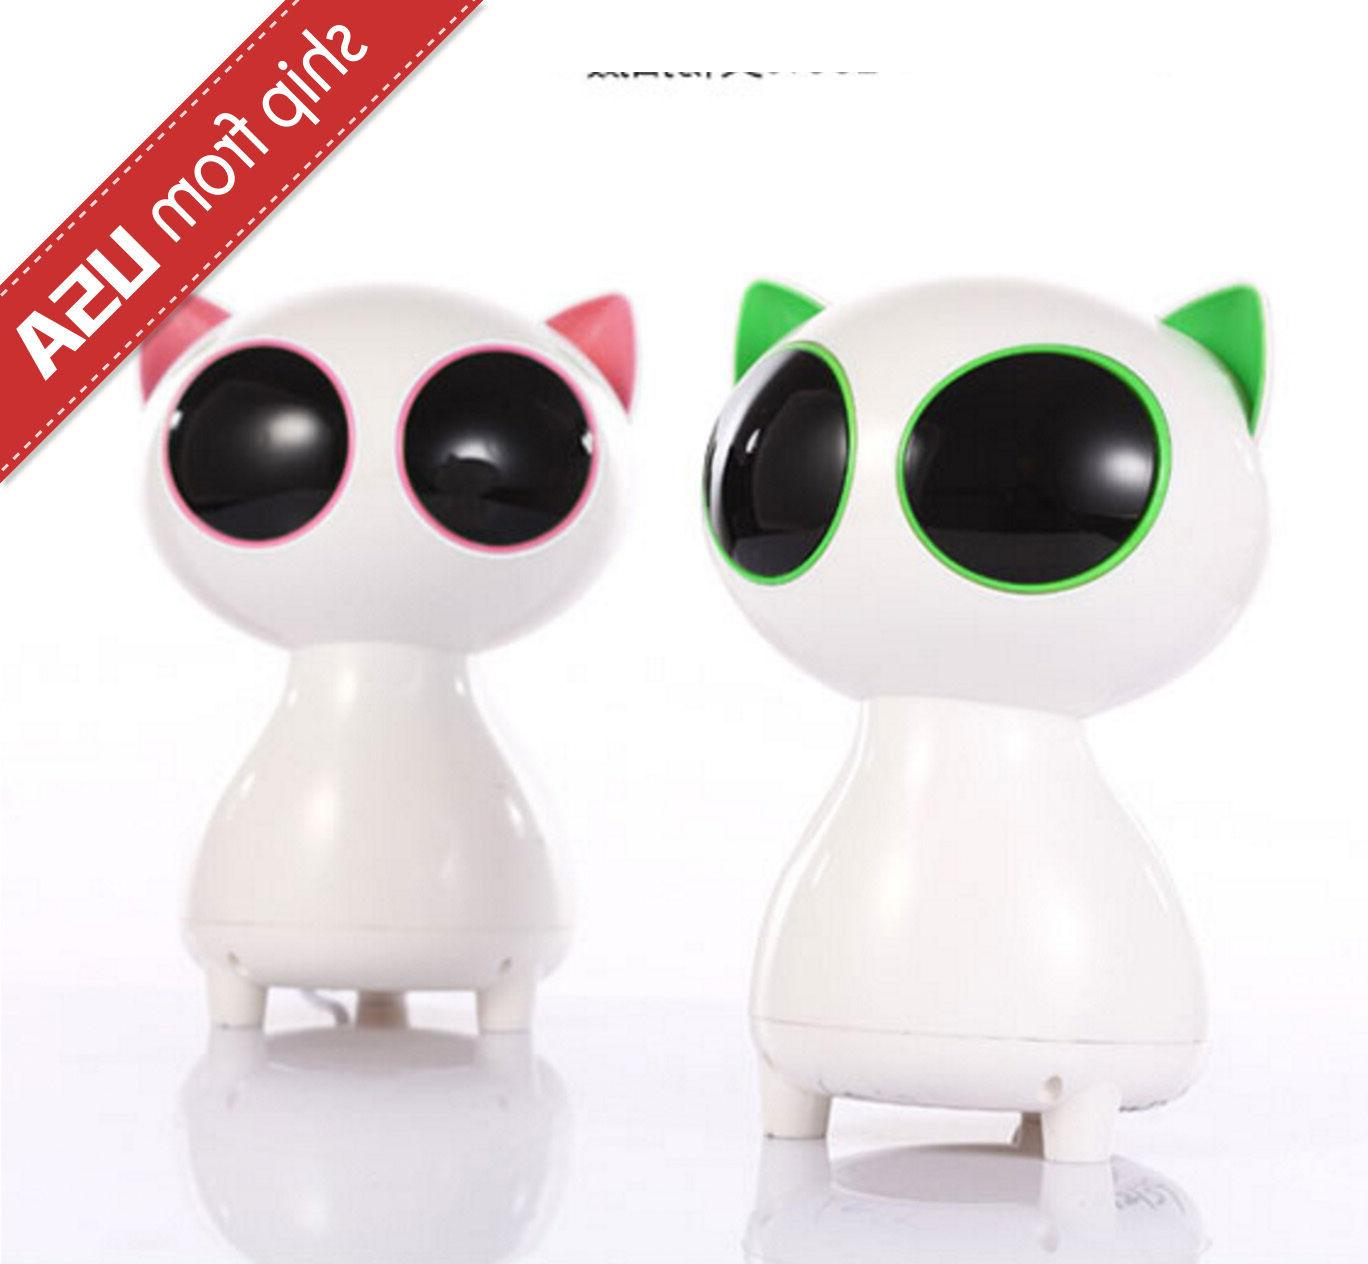 Robot Cat USB Laptop Speaker System Cartoon Portable Subwoof